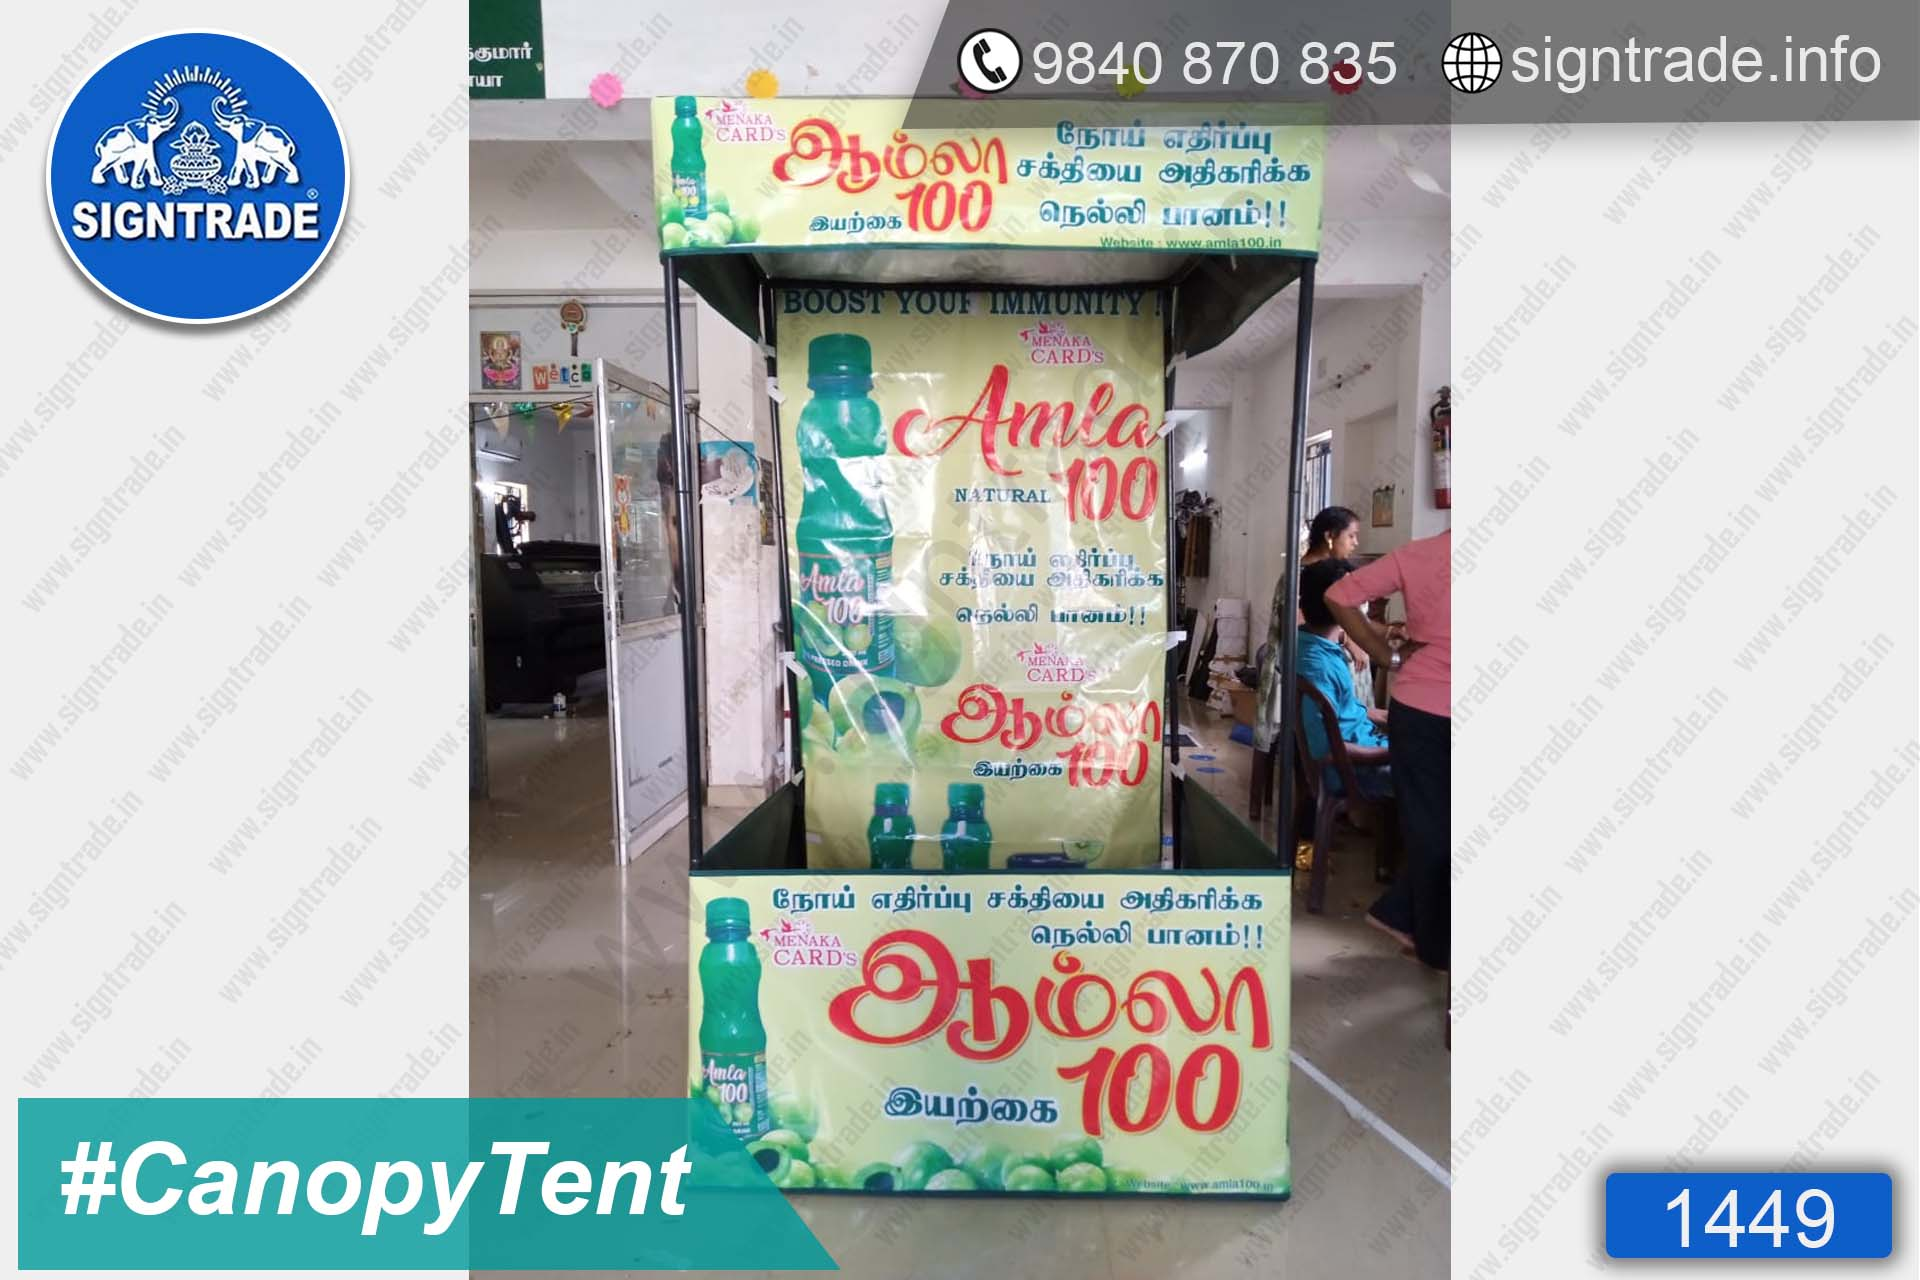 Amla 100 Nature - Menaka Cards - 1449, Canopy tent, Flat roof tent, Promo tent, Promotional tent, Advertising tent